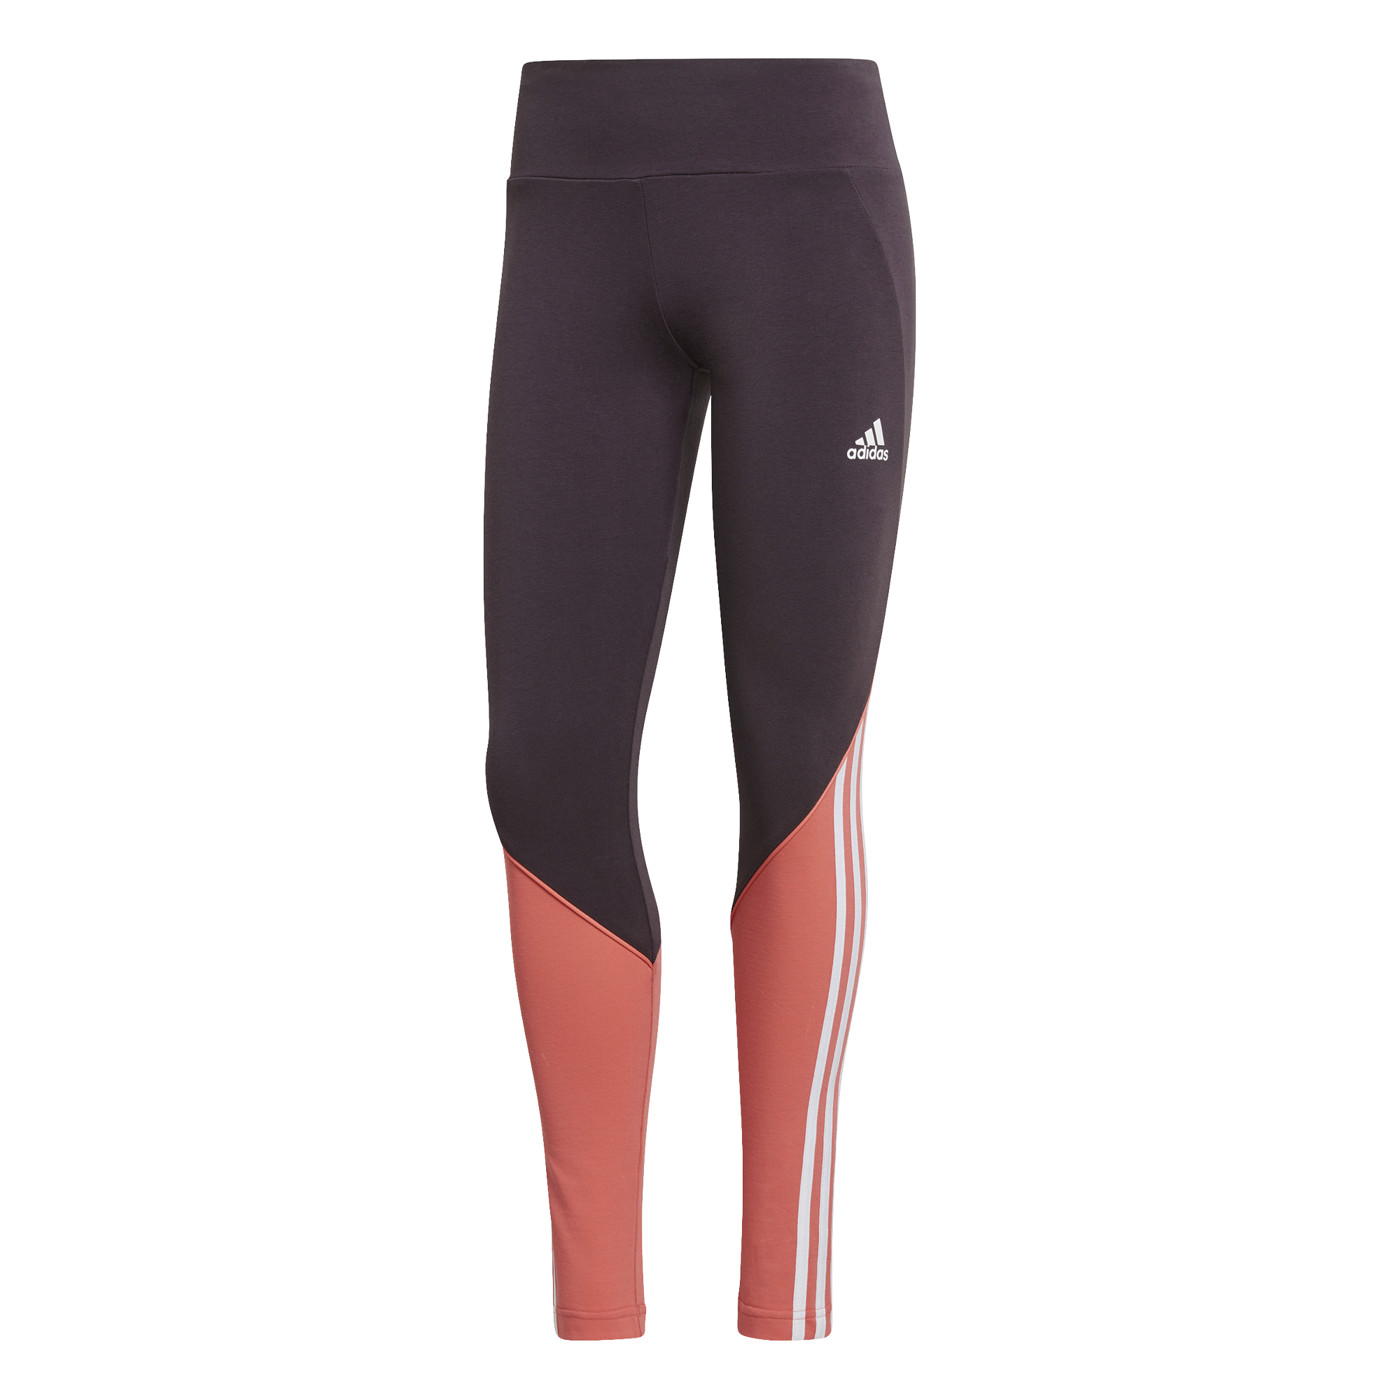 ADIDAS OSR W TIGHT - Damen